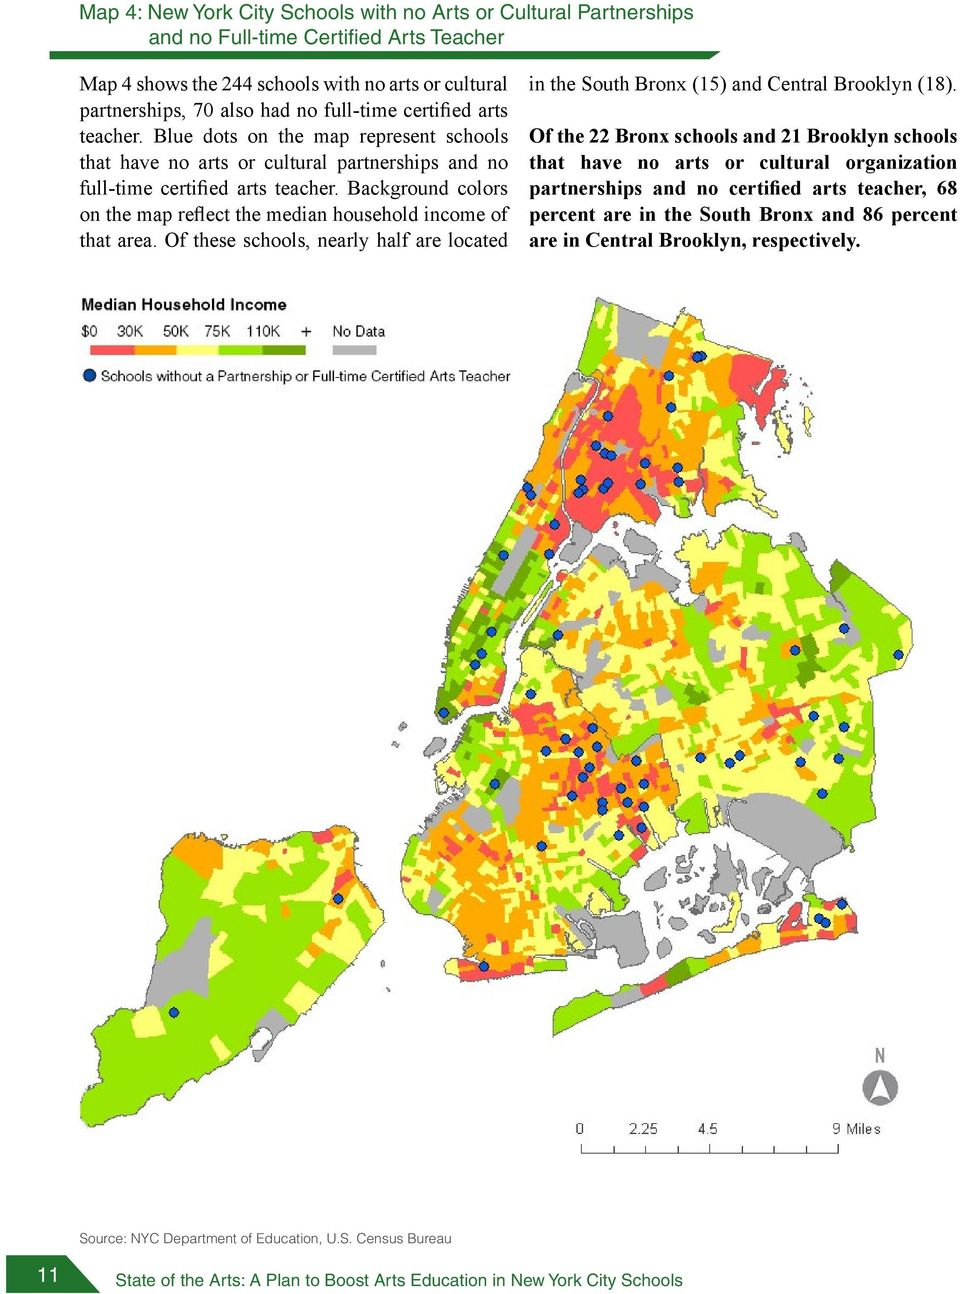 Background colors on the map reflect the median household income of that area. Of these schools, nearly half are located in the South Bronx (15) and Central Brooklyn (18).